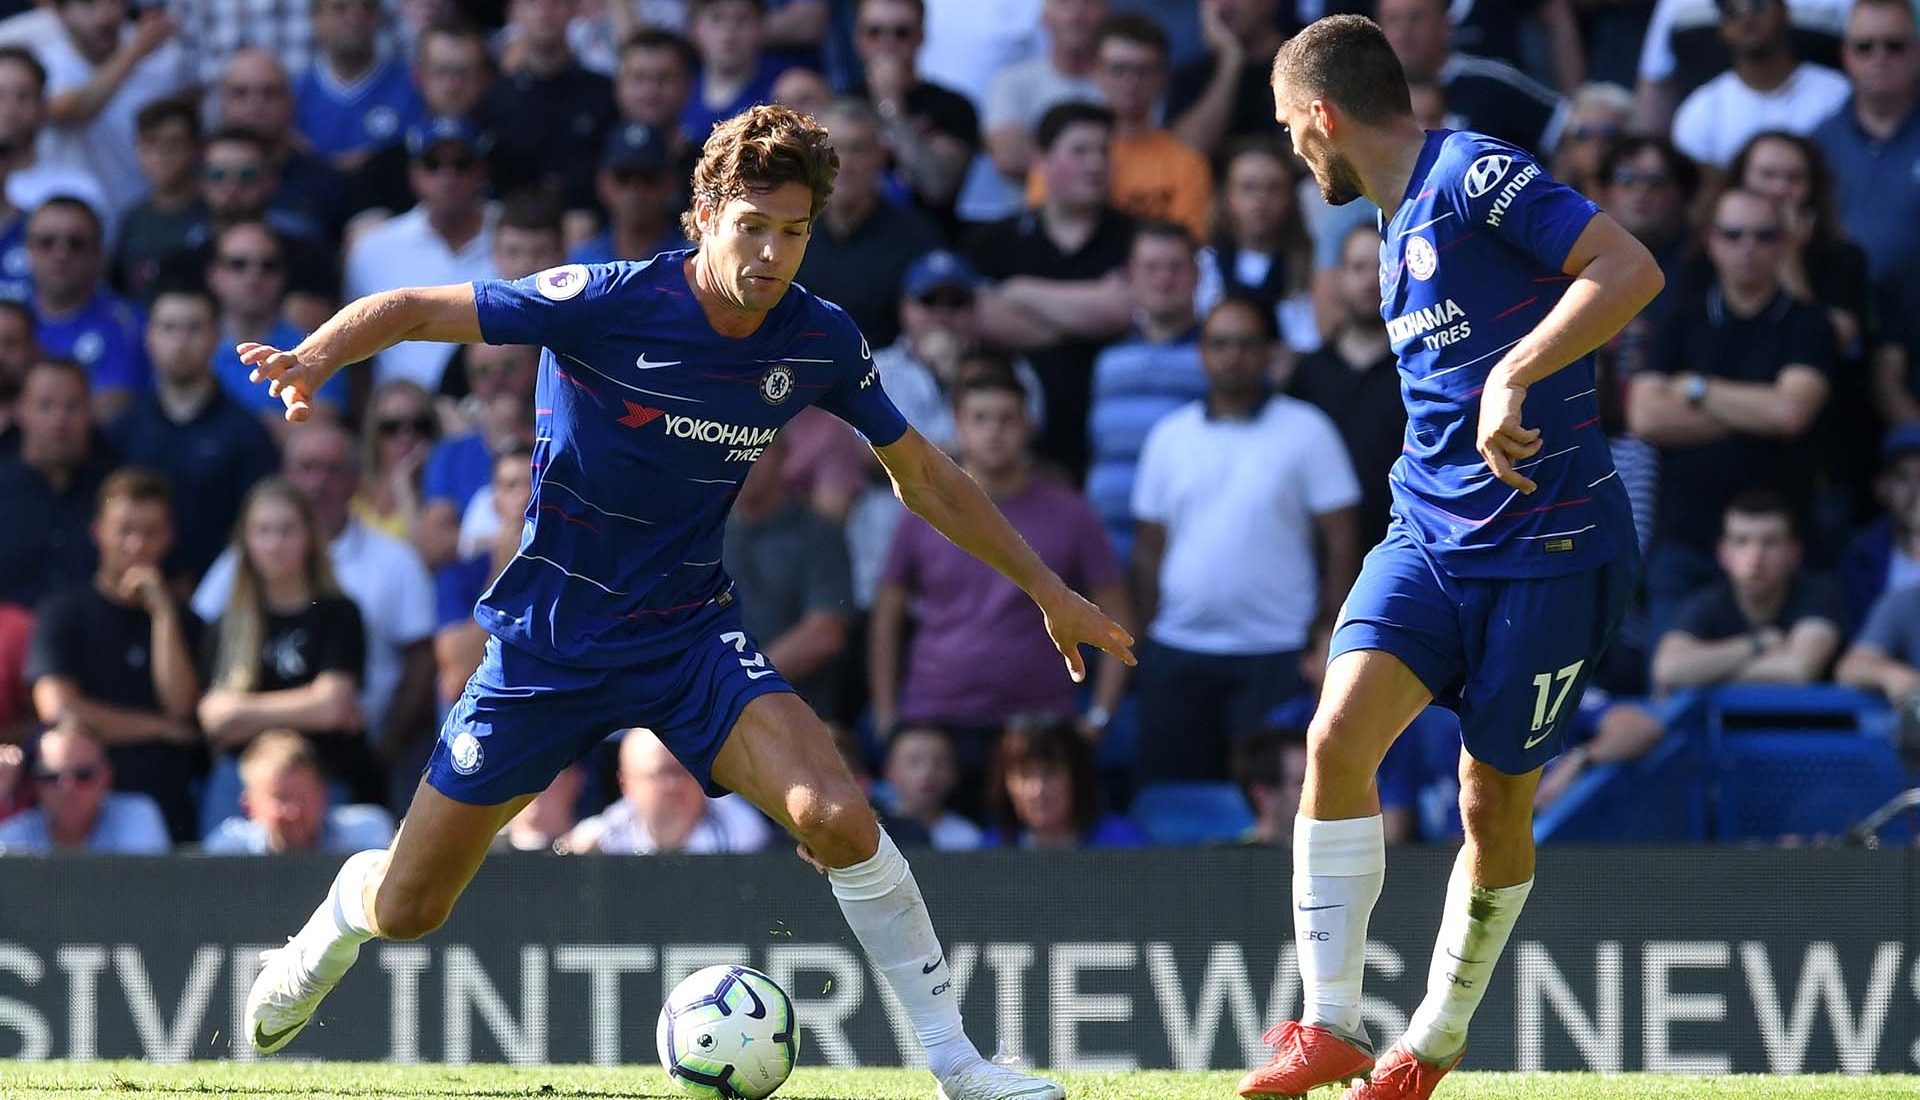 Marcos Alonso controls the ball during the Premier League match between Chelsea FC and AFC Bournemouth at Stamford Bridge on September 1, 2018 in London.